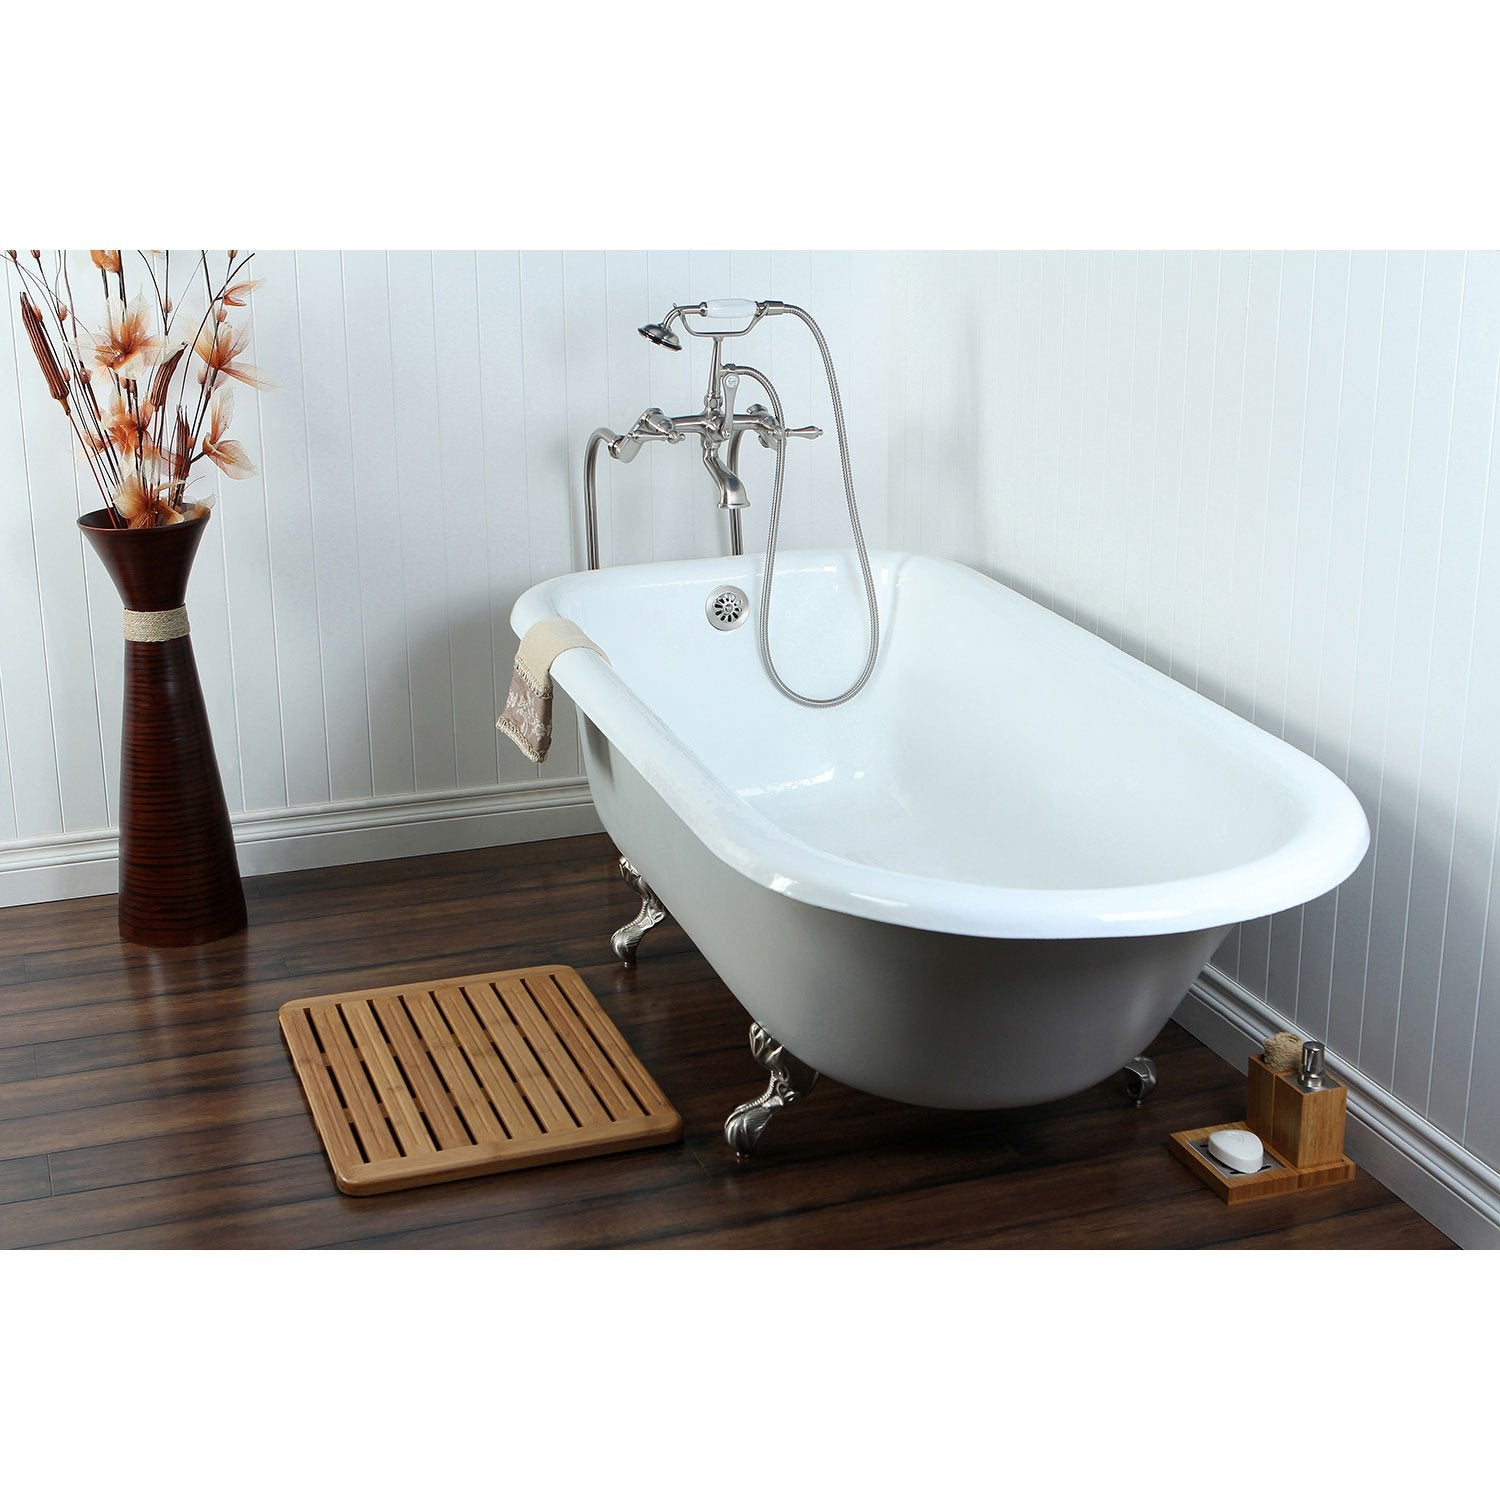 "67"" Clawfoot Tub w/ Floor Mount Satin Nickel Tub Filler & Hardware Package CTP41"